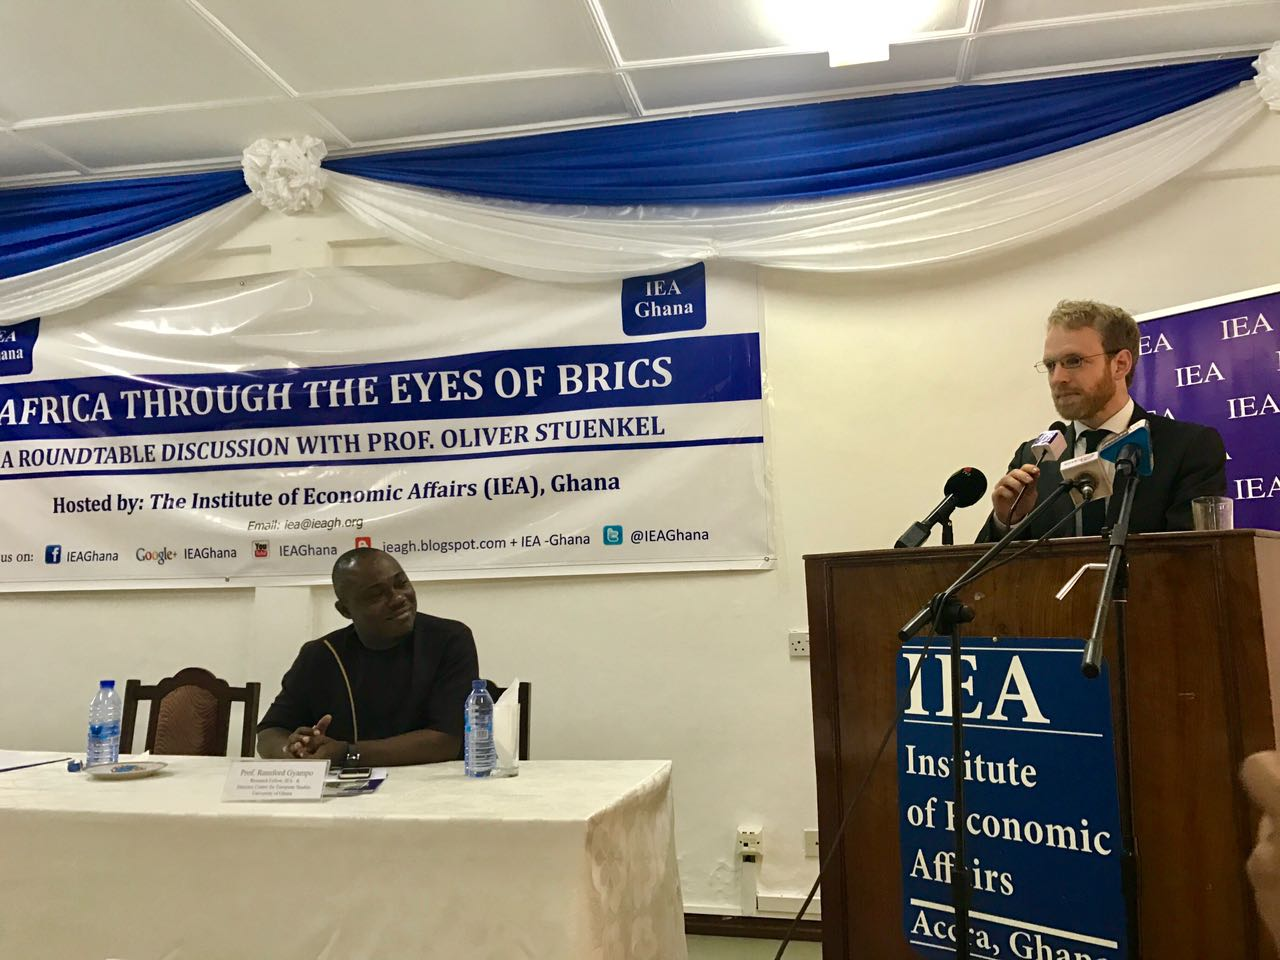 Growing role of BRICS is discussed at event in Ghana